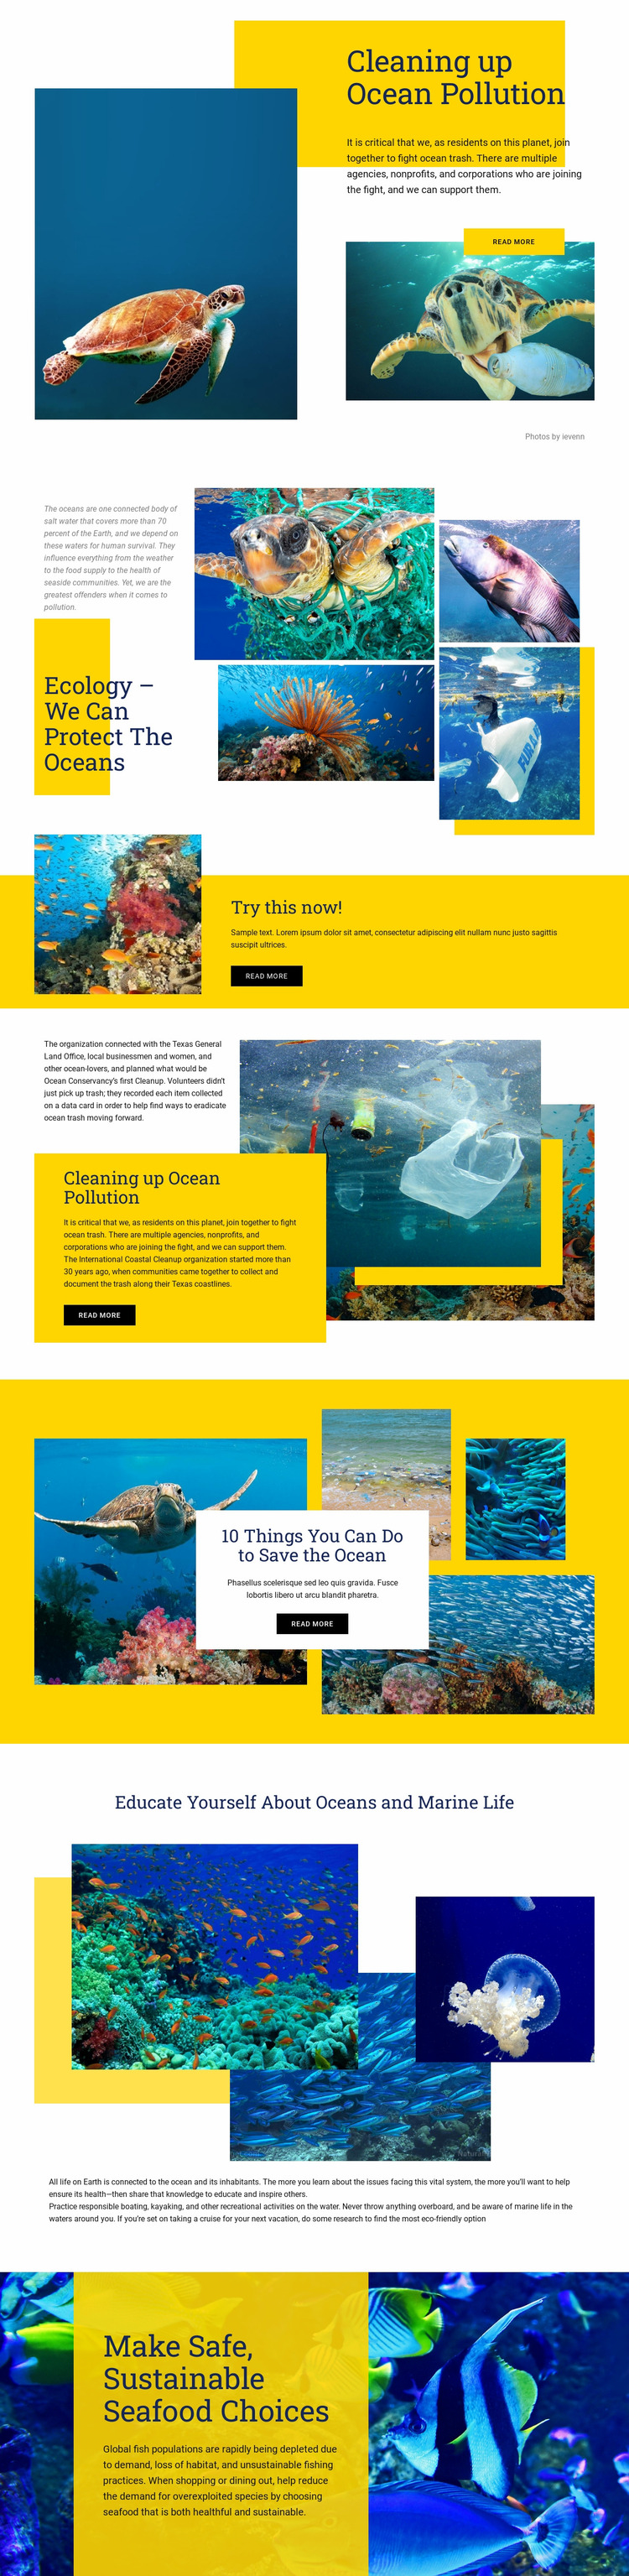 Protect The Oceans Website Mockup